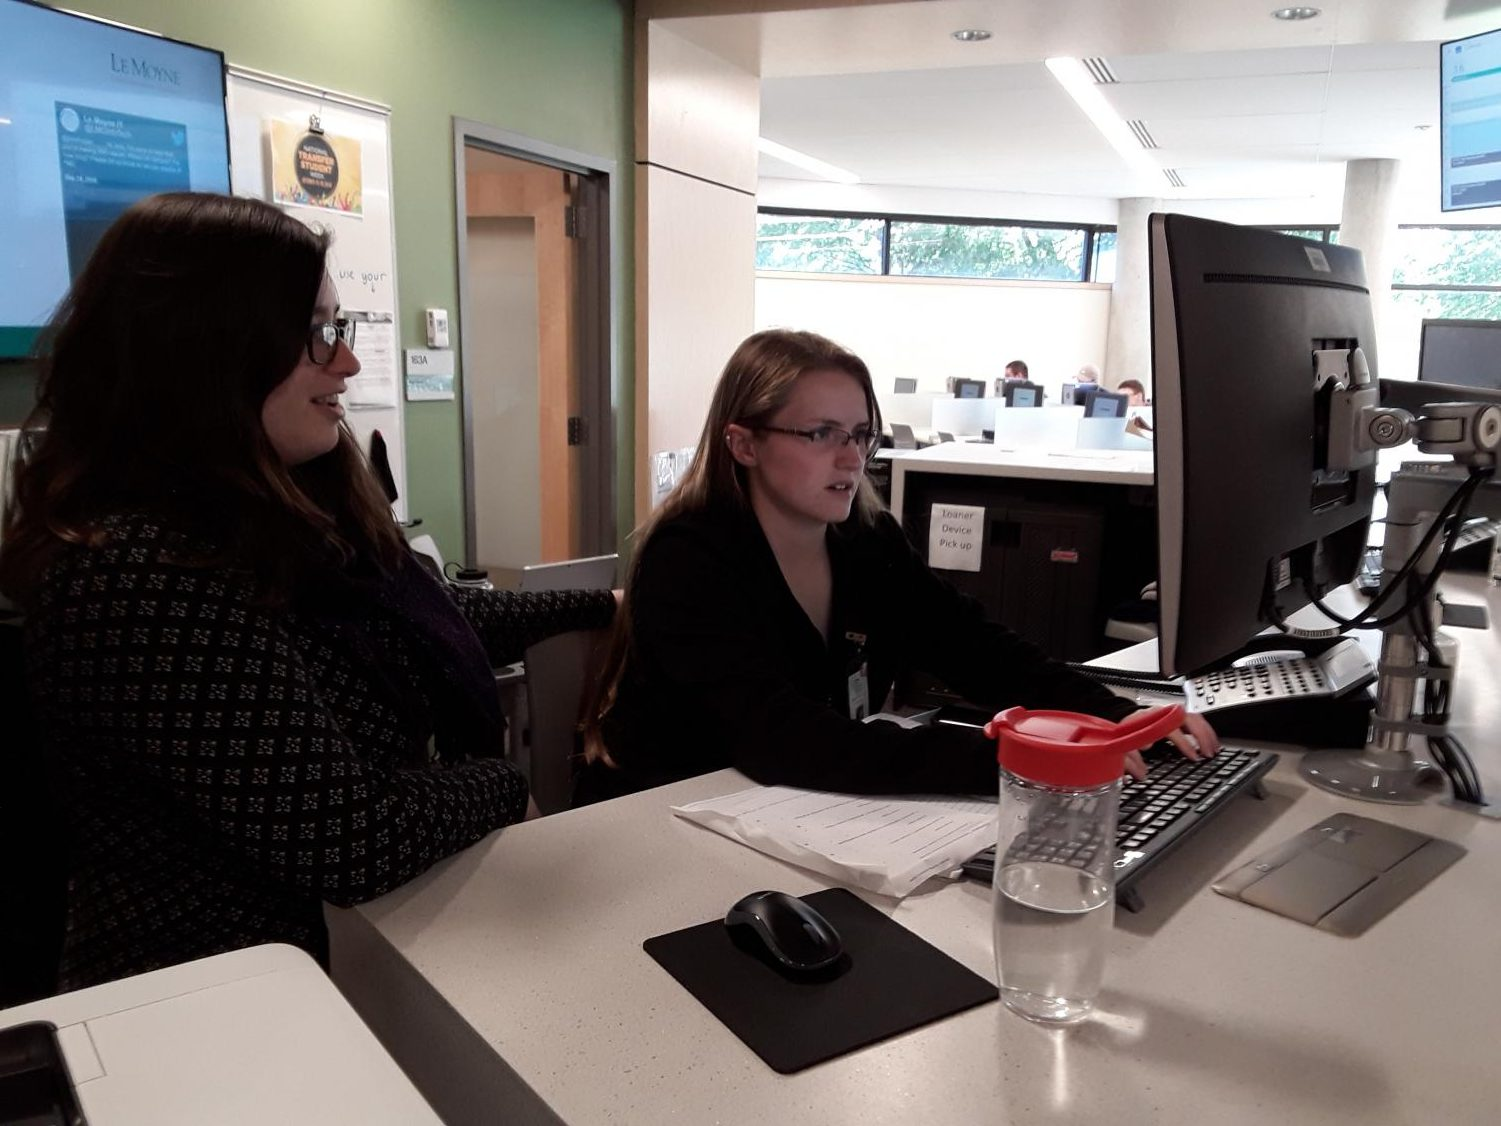 IT staff members Ranata De Gennaro (left) and Kassandra Neff work in the Noreen Falcone library.